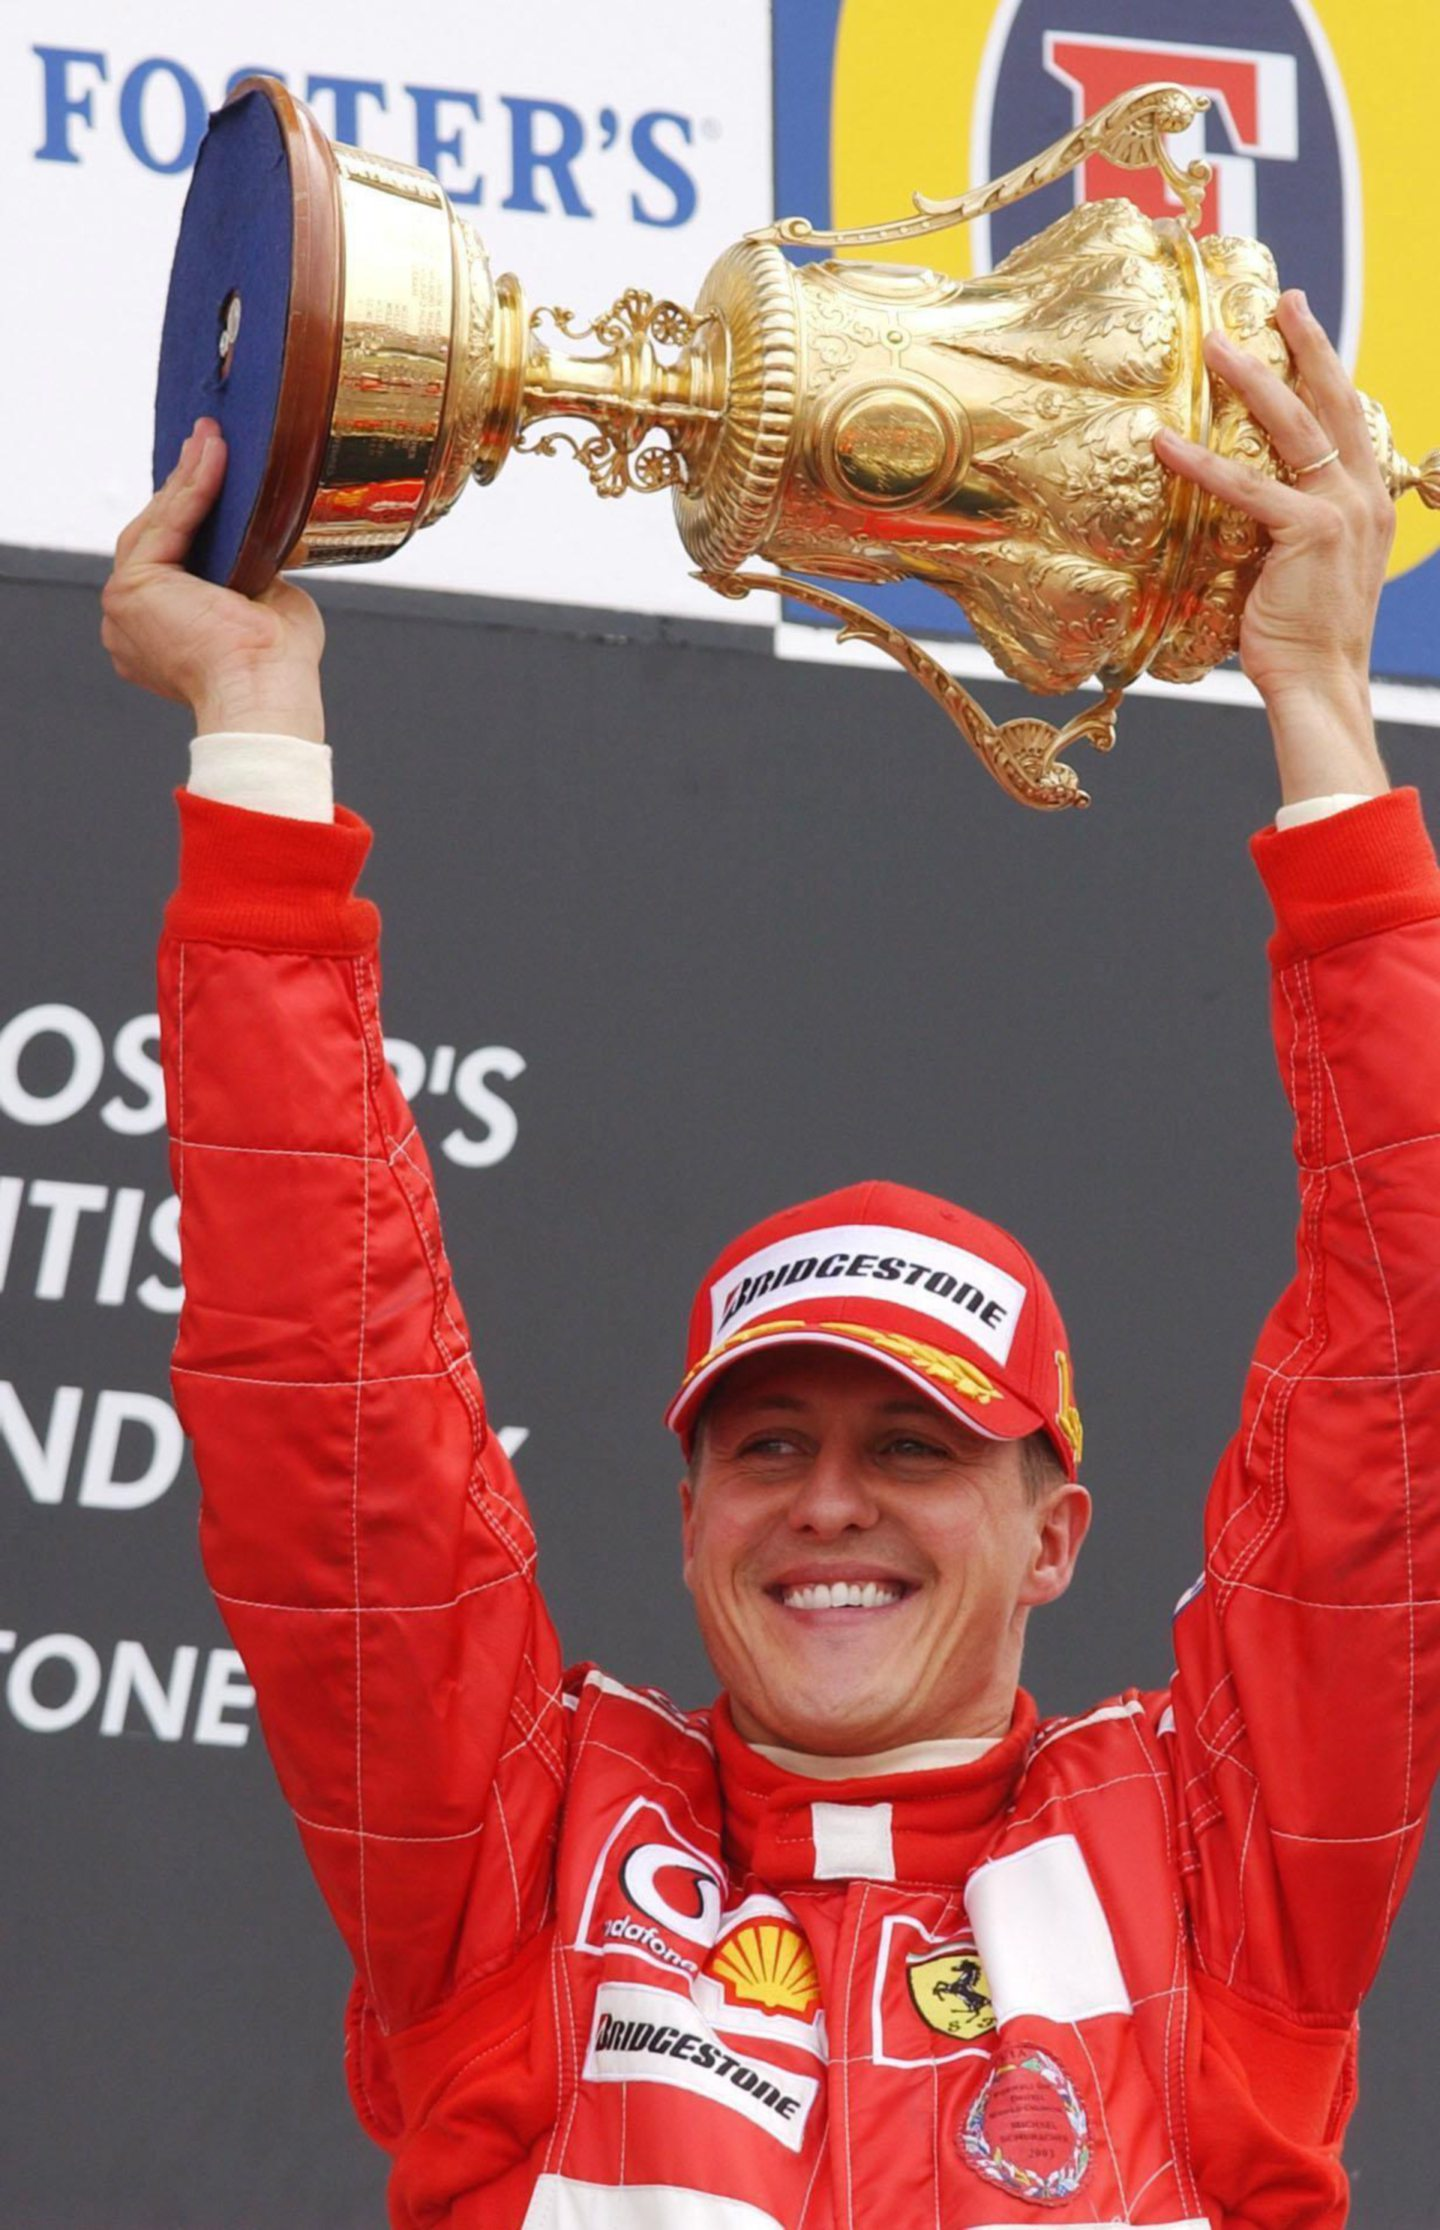 Michael Schumacher enjoyed unprecedented success in the late 1990s and early 2000s.